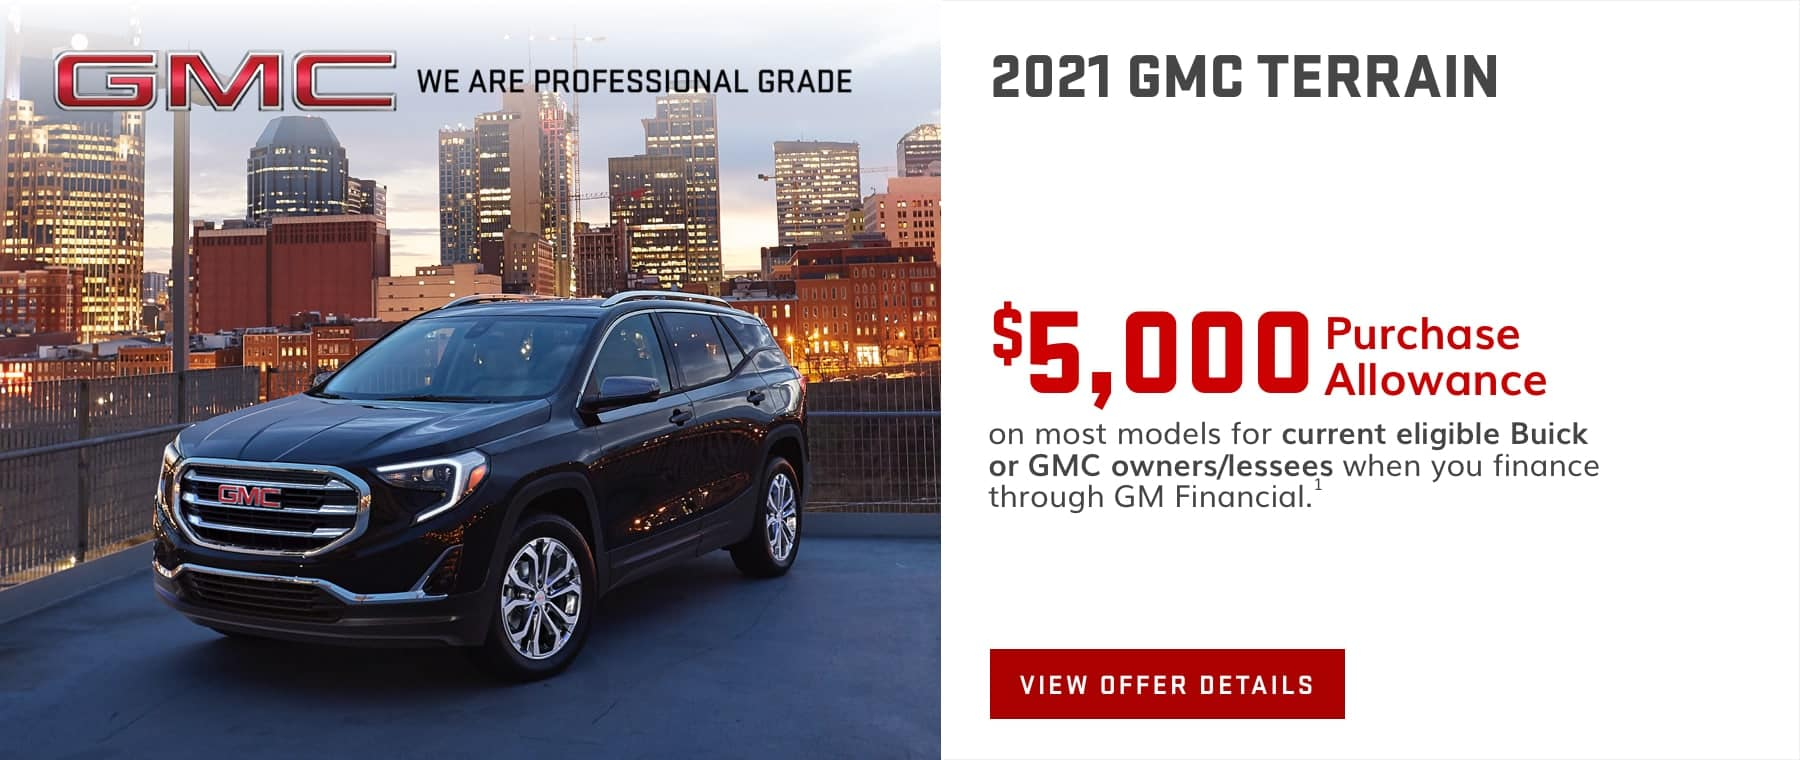 $5,000 Purchase Allowance on most models for current eligible Buick or GMC owners/lessees when you finance through GM Financial.1